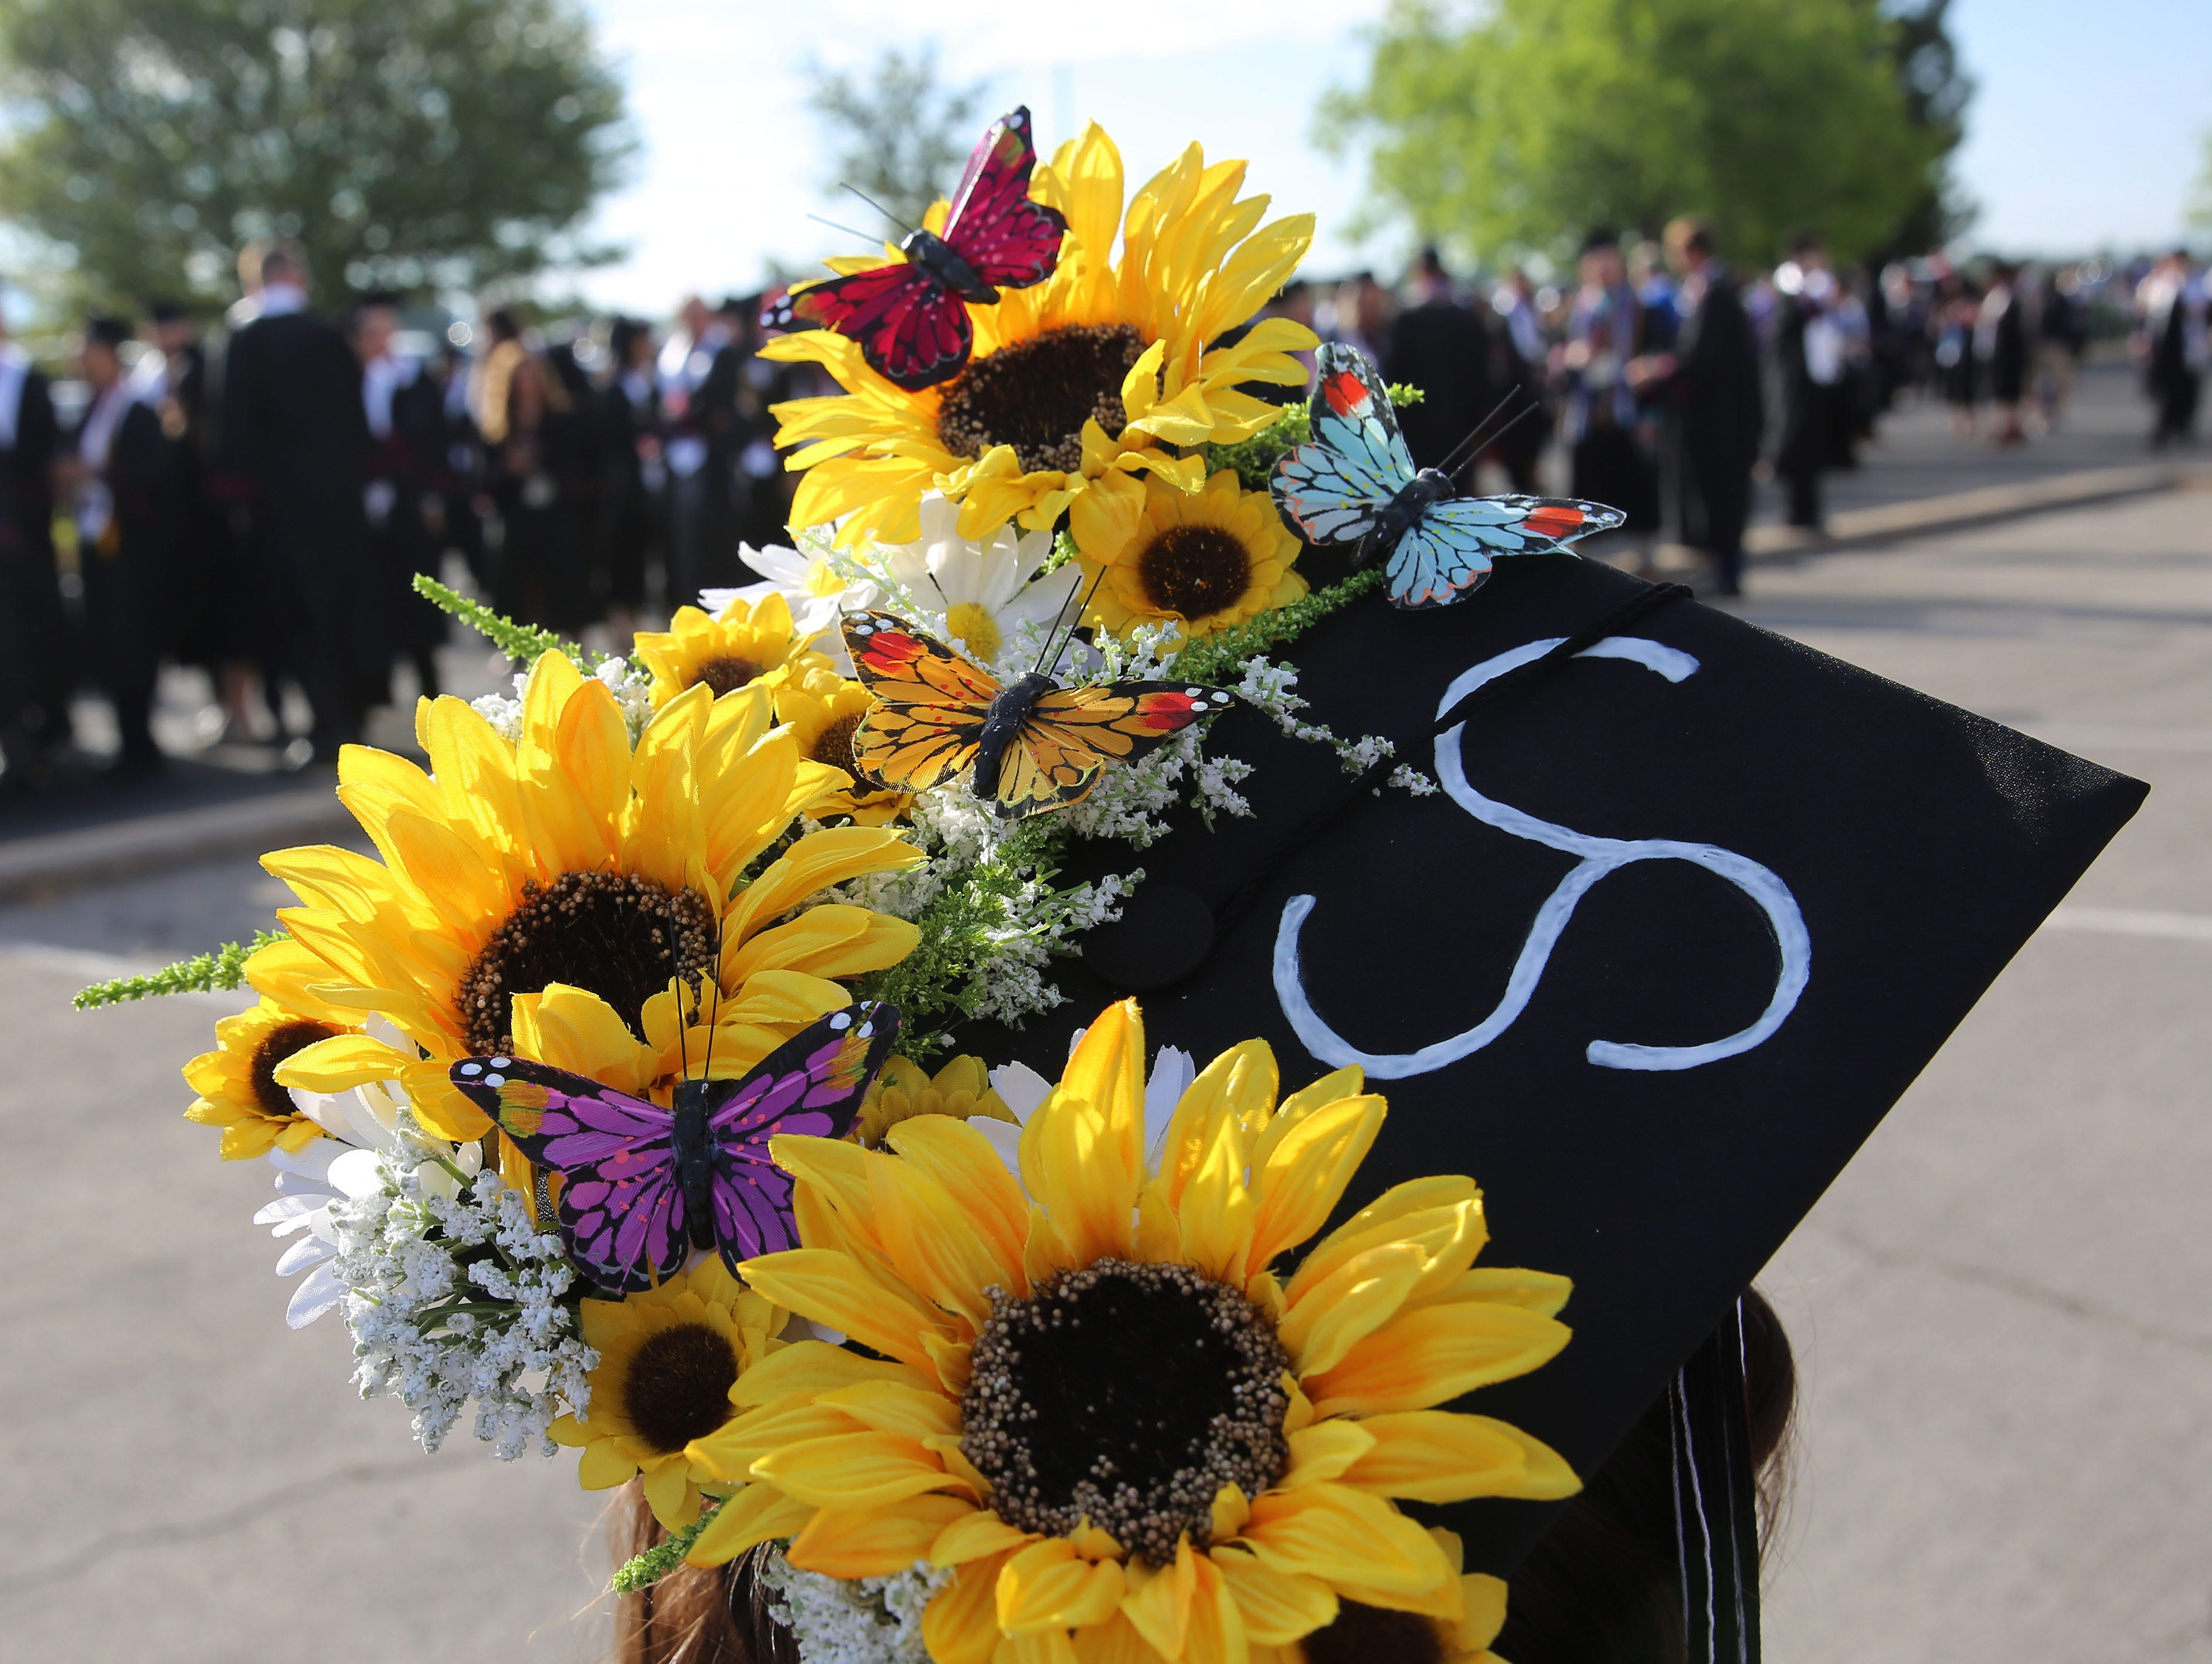 Jeanette Castanon majored in agricultural biology, after a recruiter at a college fair asked her if she'd heard about the degree program. She hadn't, but when she started taking classes, she fell in love with the field, she said. She hopes to work as an agricultural inspector. Her hat sports butterflies and sunflowers, because she took an entomology class, which she loved, and yellow is her favorite color.